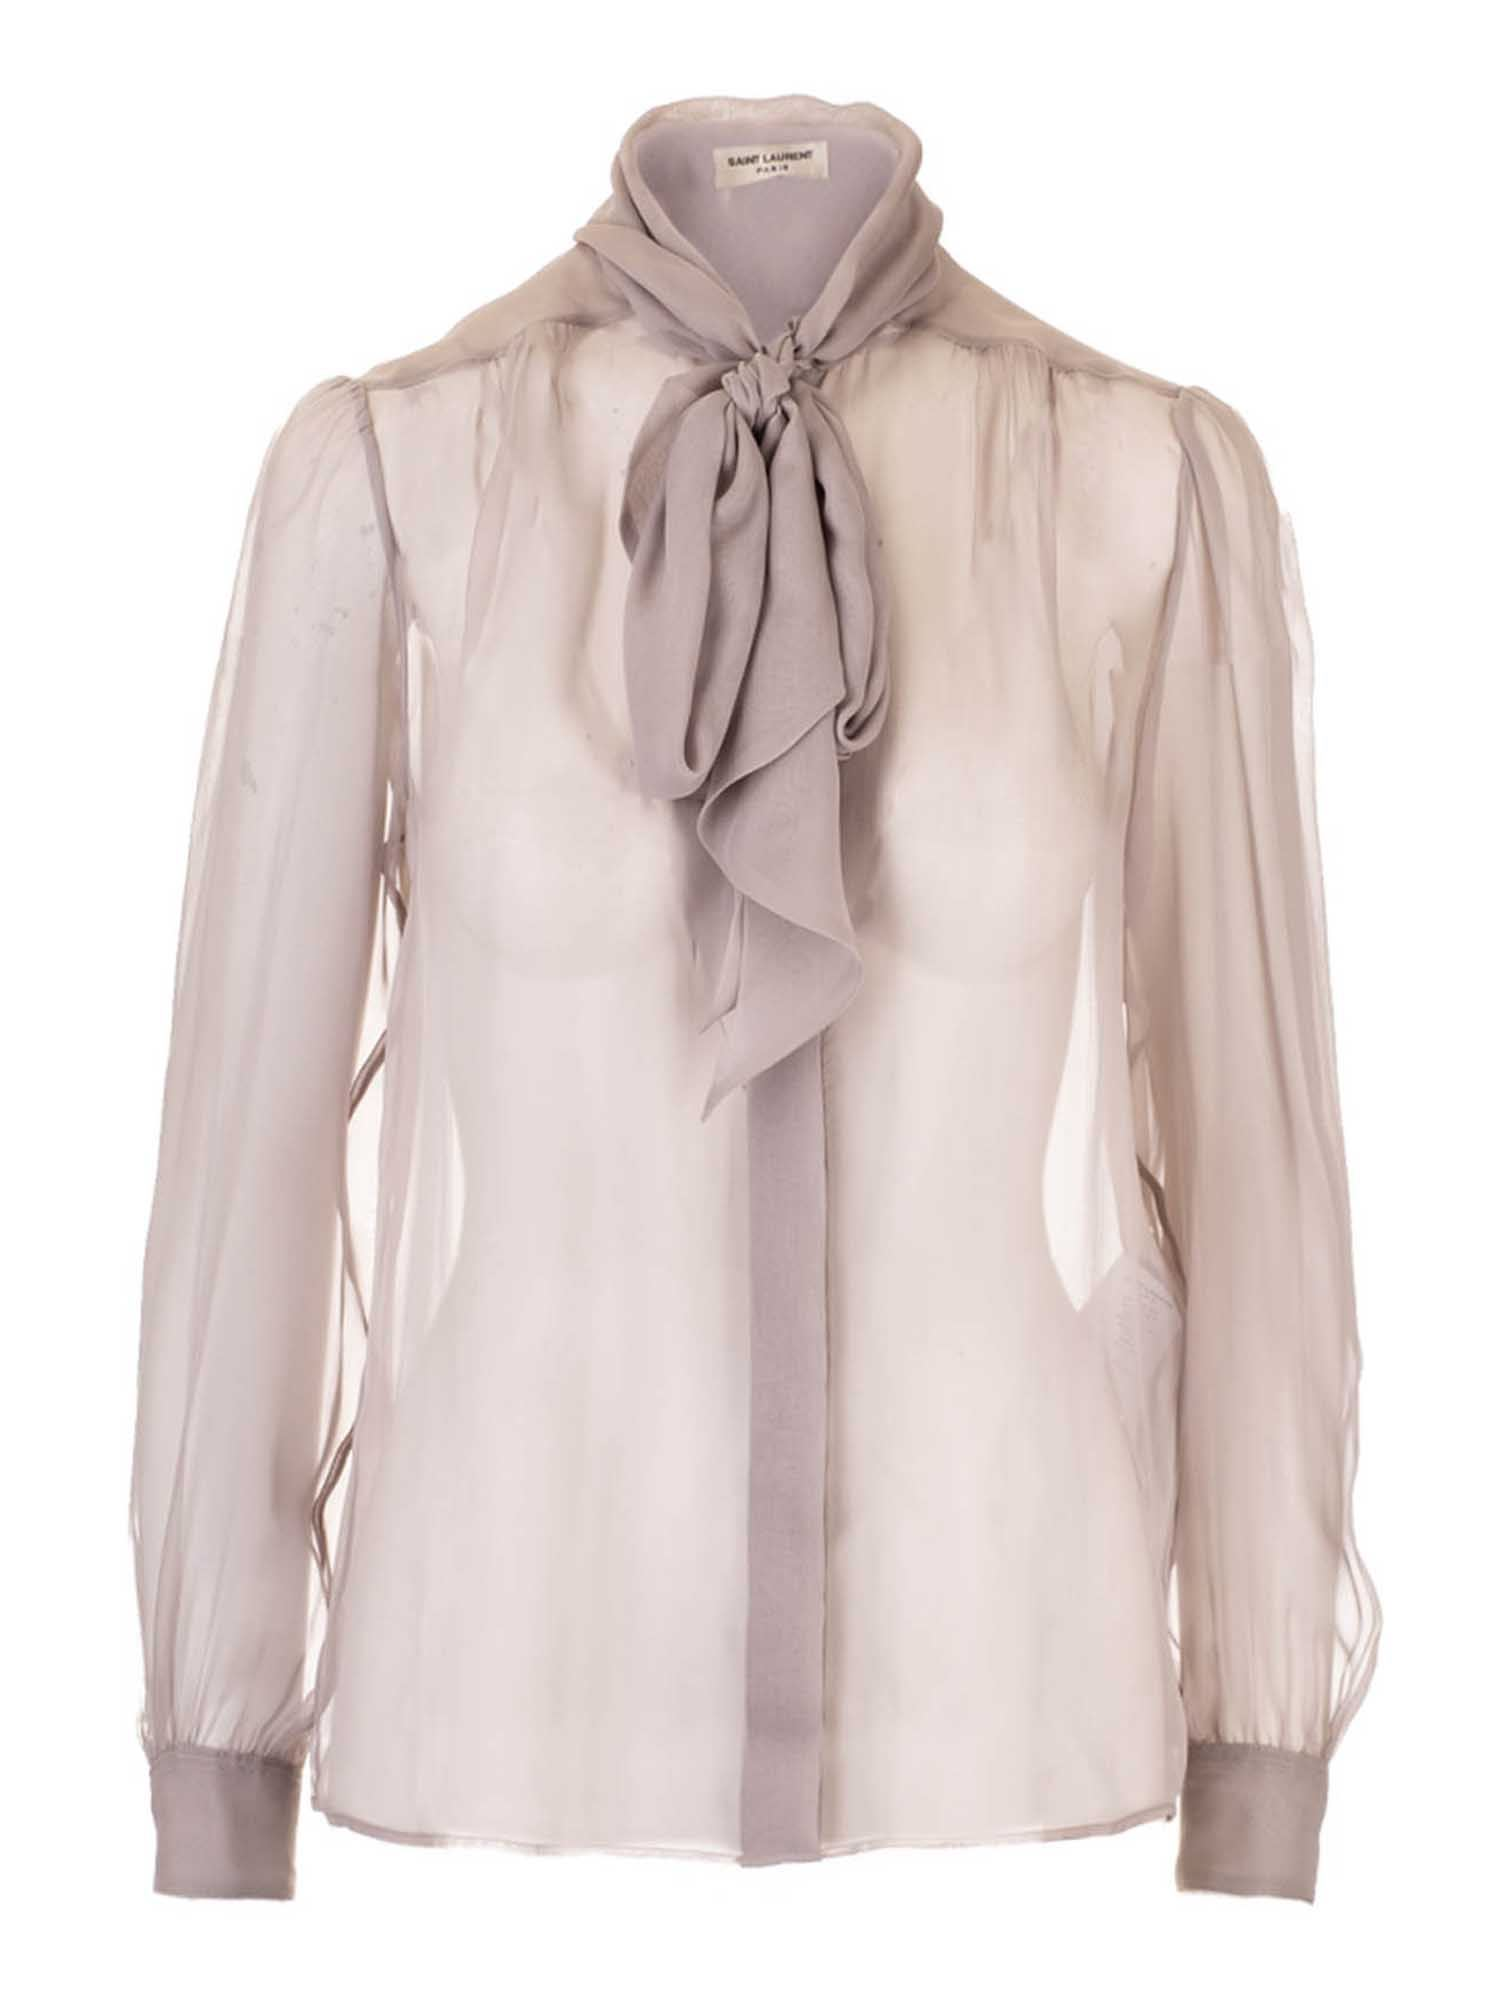 Saint Laurent LAVALLIÈRE COLLAR BLOUSE IN PEARL COLOR